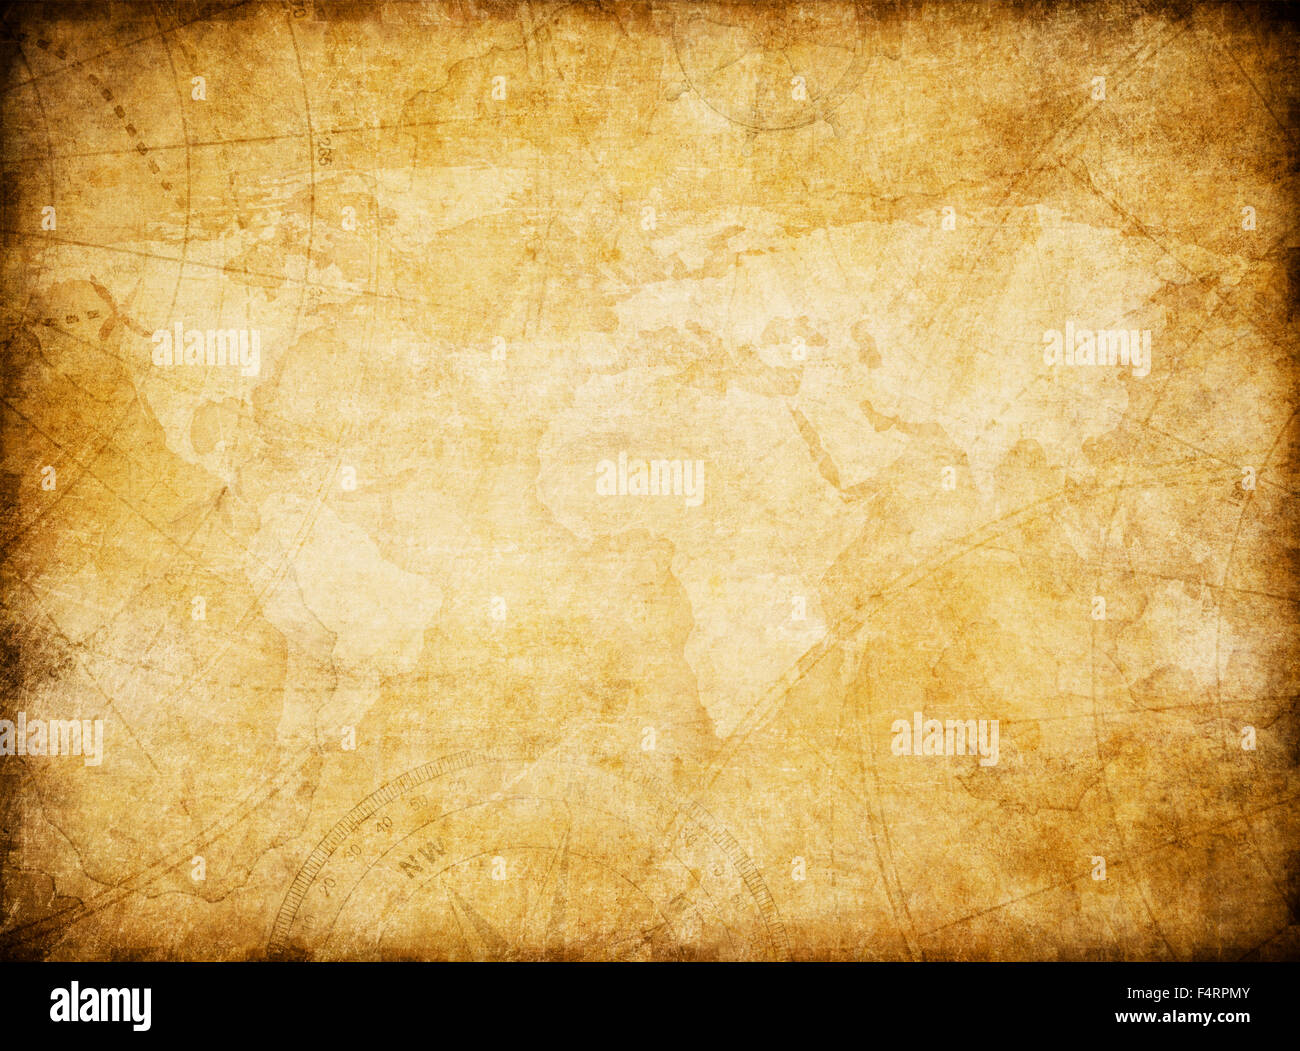 Vintage world map stock photos vintage world map stock images alamy vintage world map background stylization stock image gumiabroncs Gallery